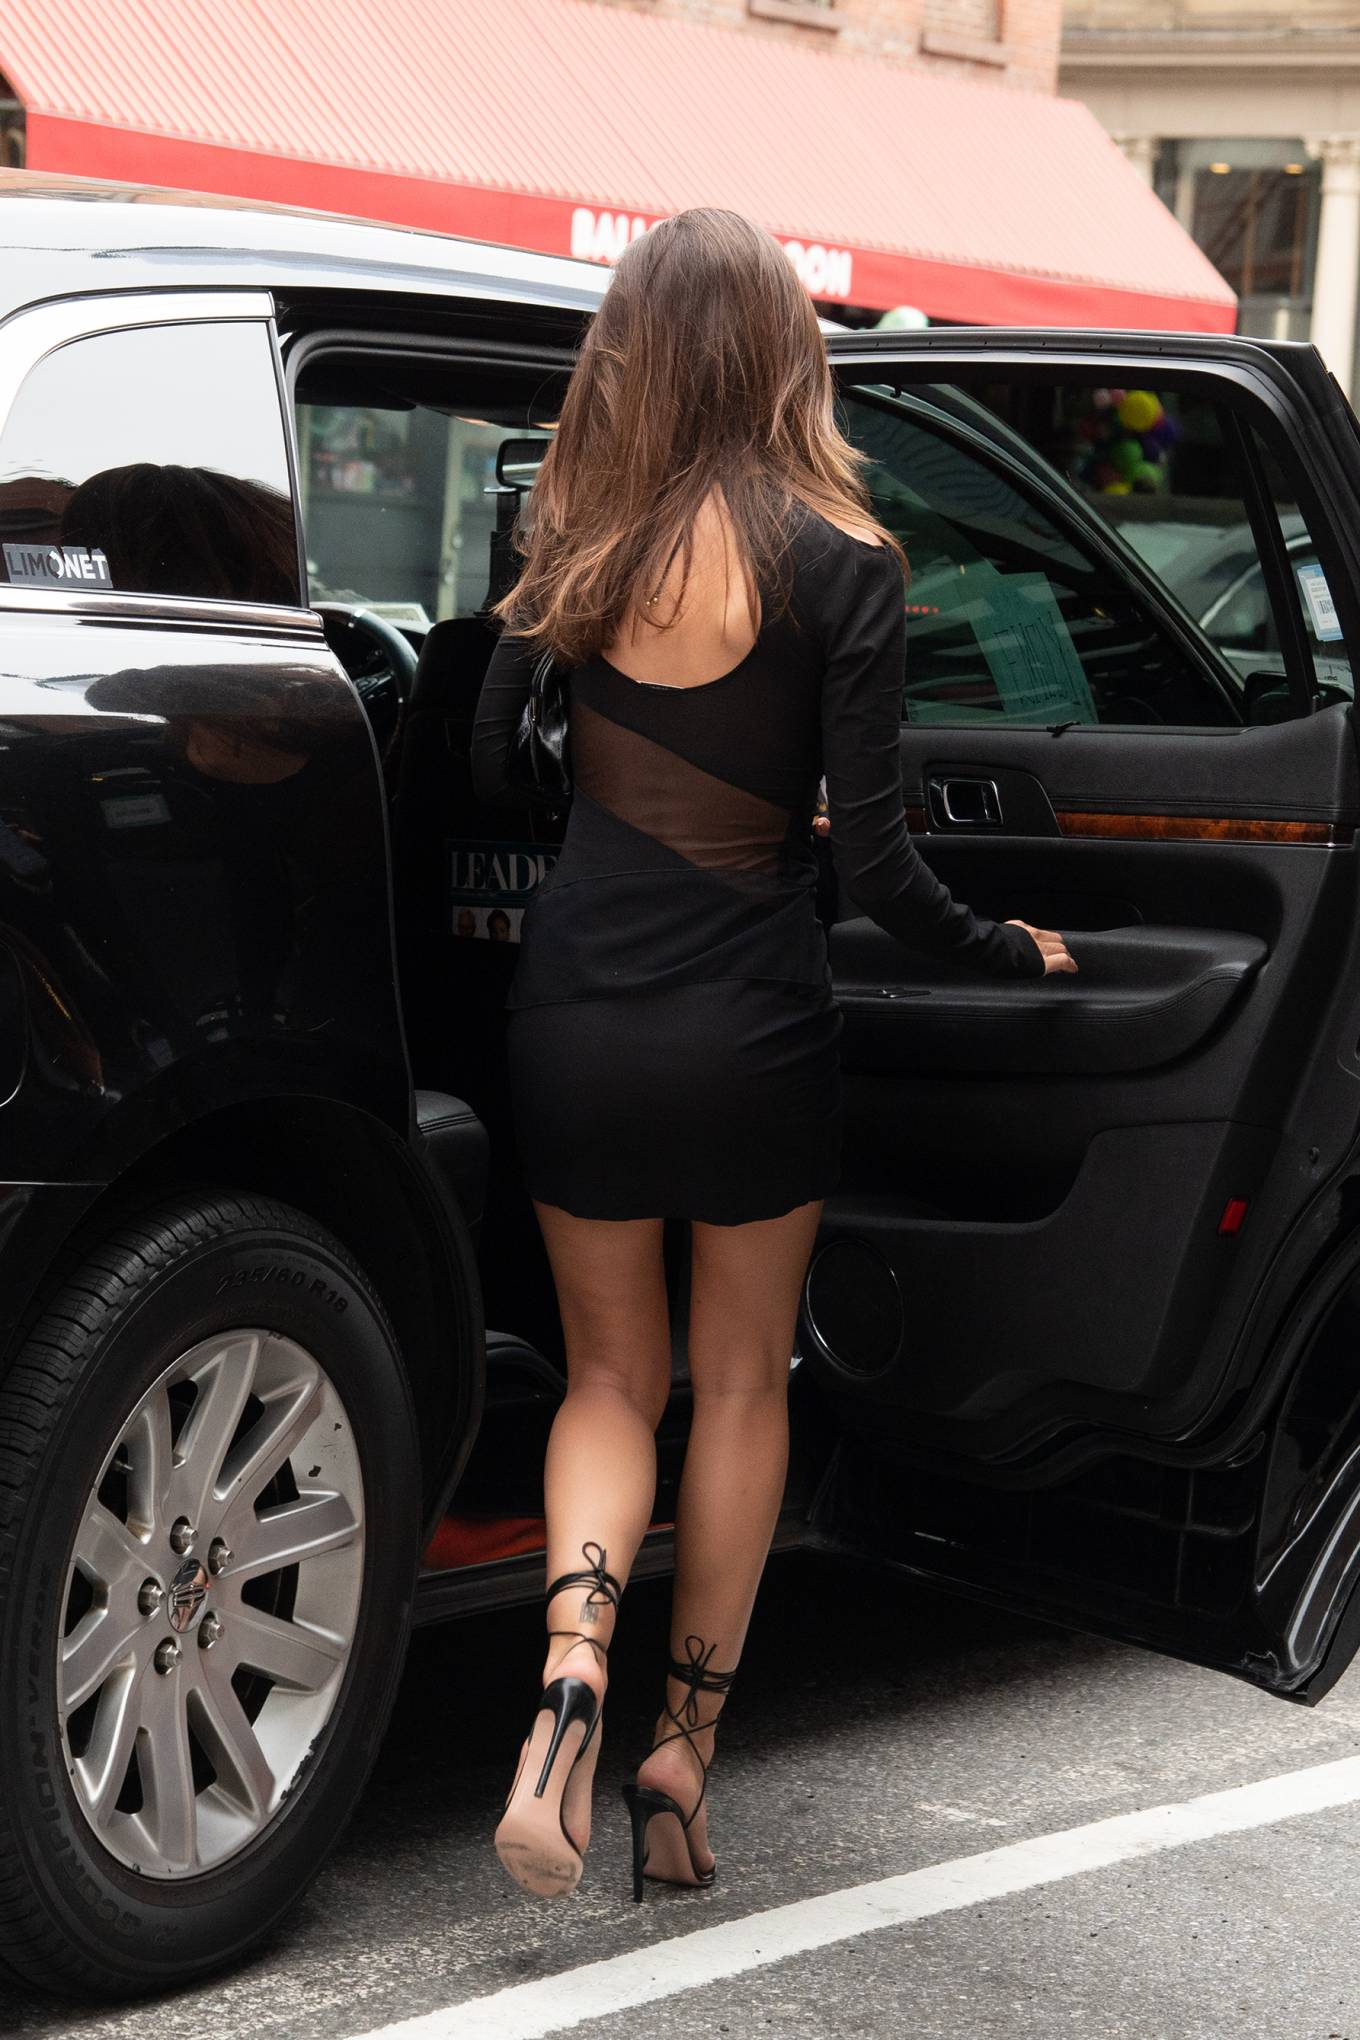 Emily Ratajkowski donning pointed black crisscross tie sandals with high heel